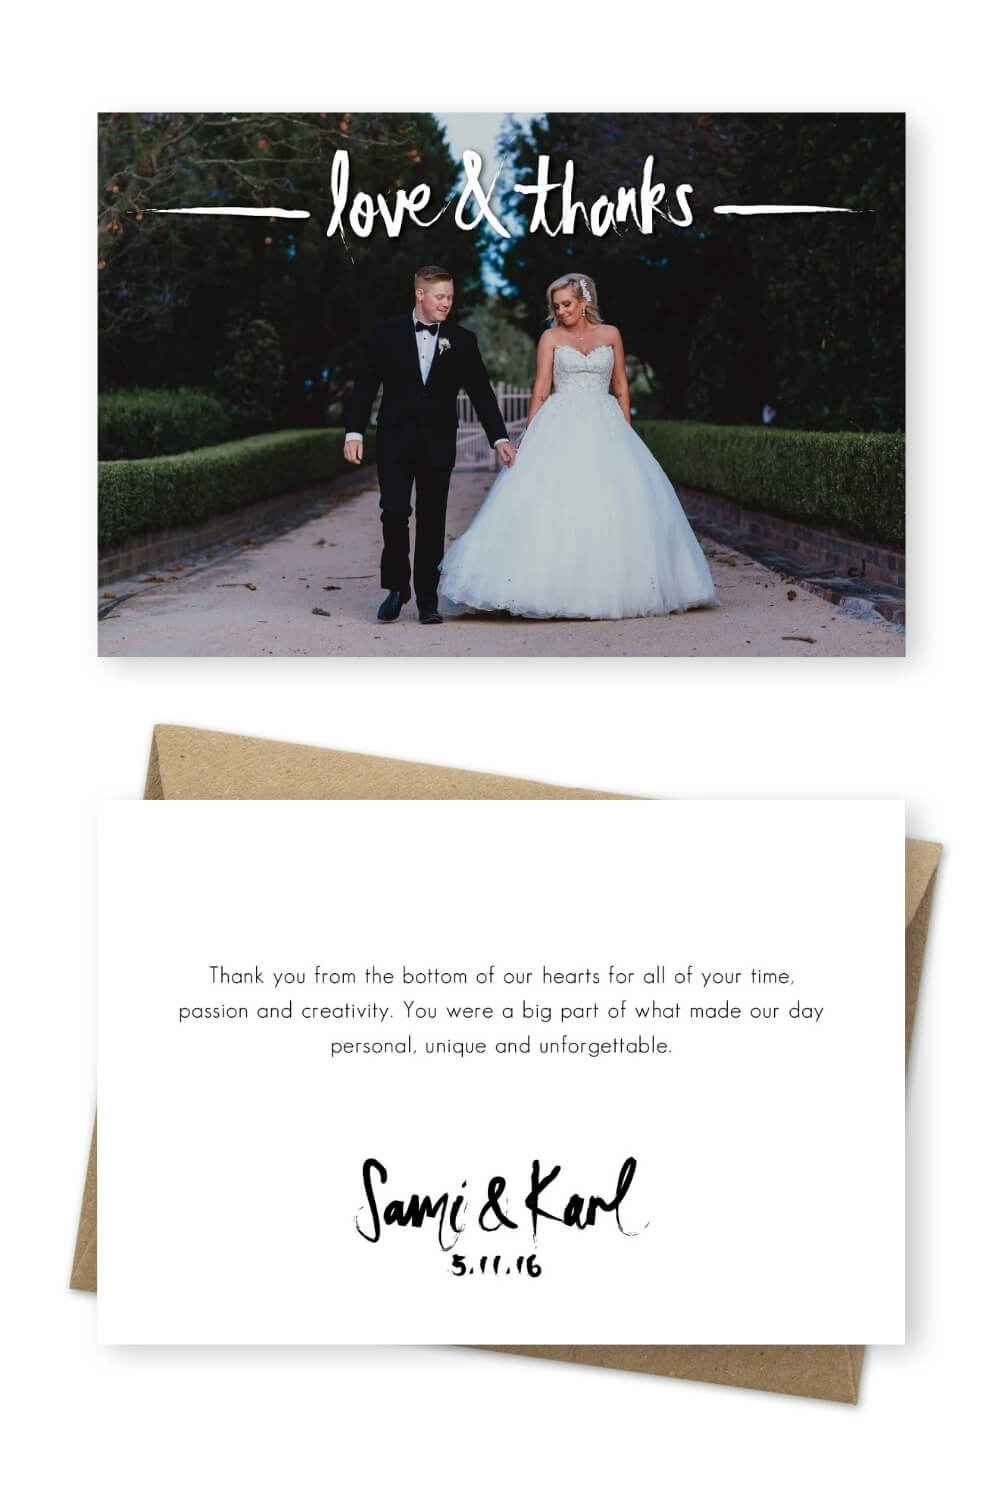 Wedding Thank You Verbiage Ideas For the Love of Stationery Nicole Butler Photography